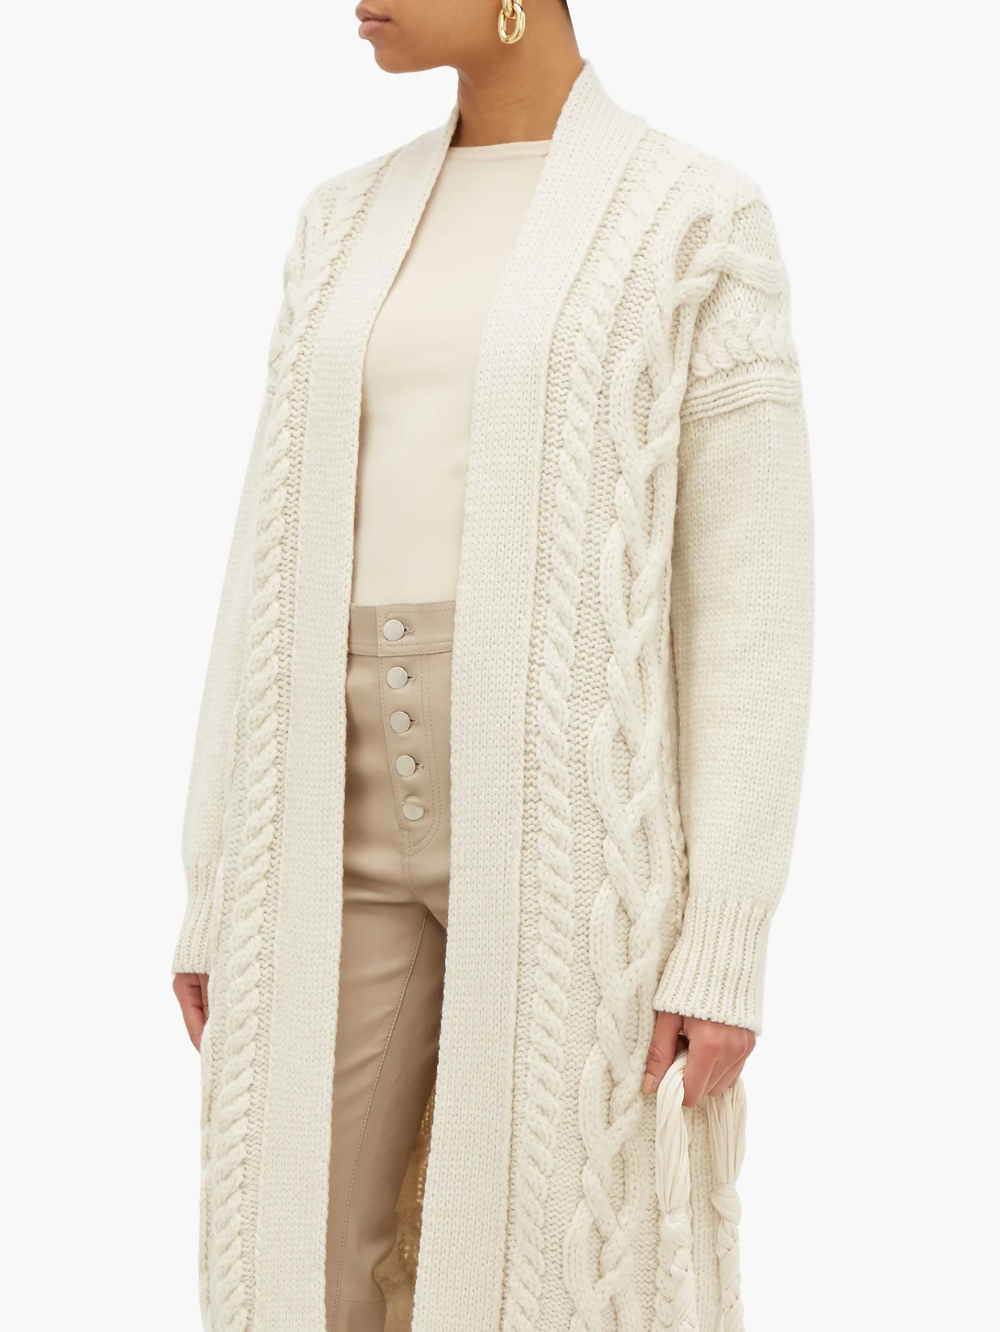 Long Line Cashmere Cardigan Jacket